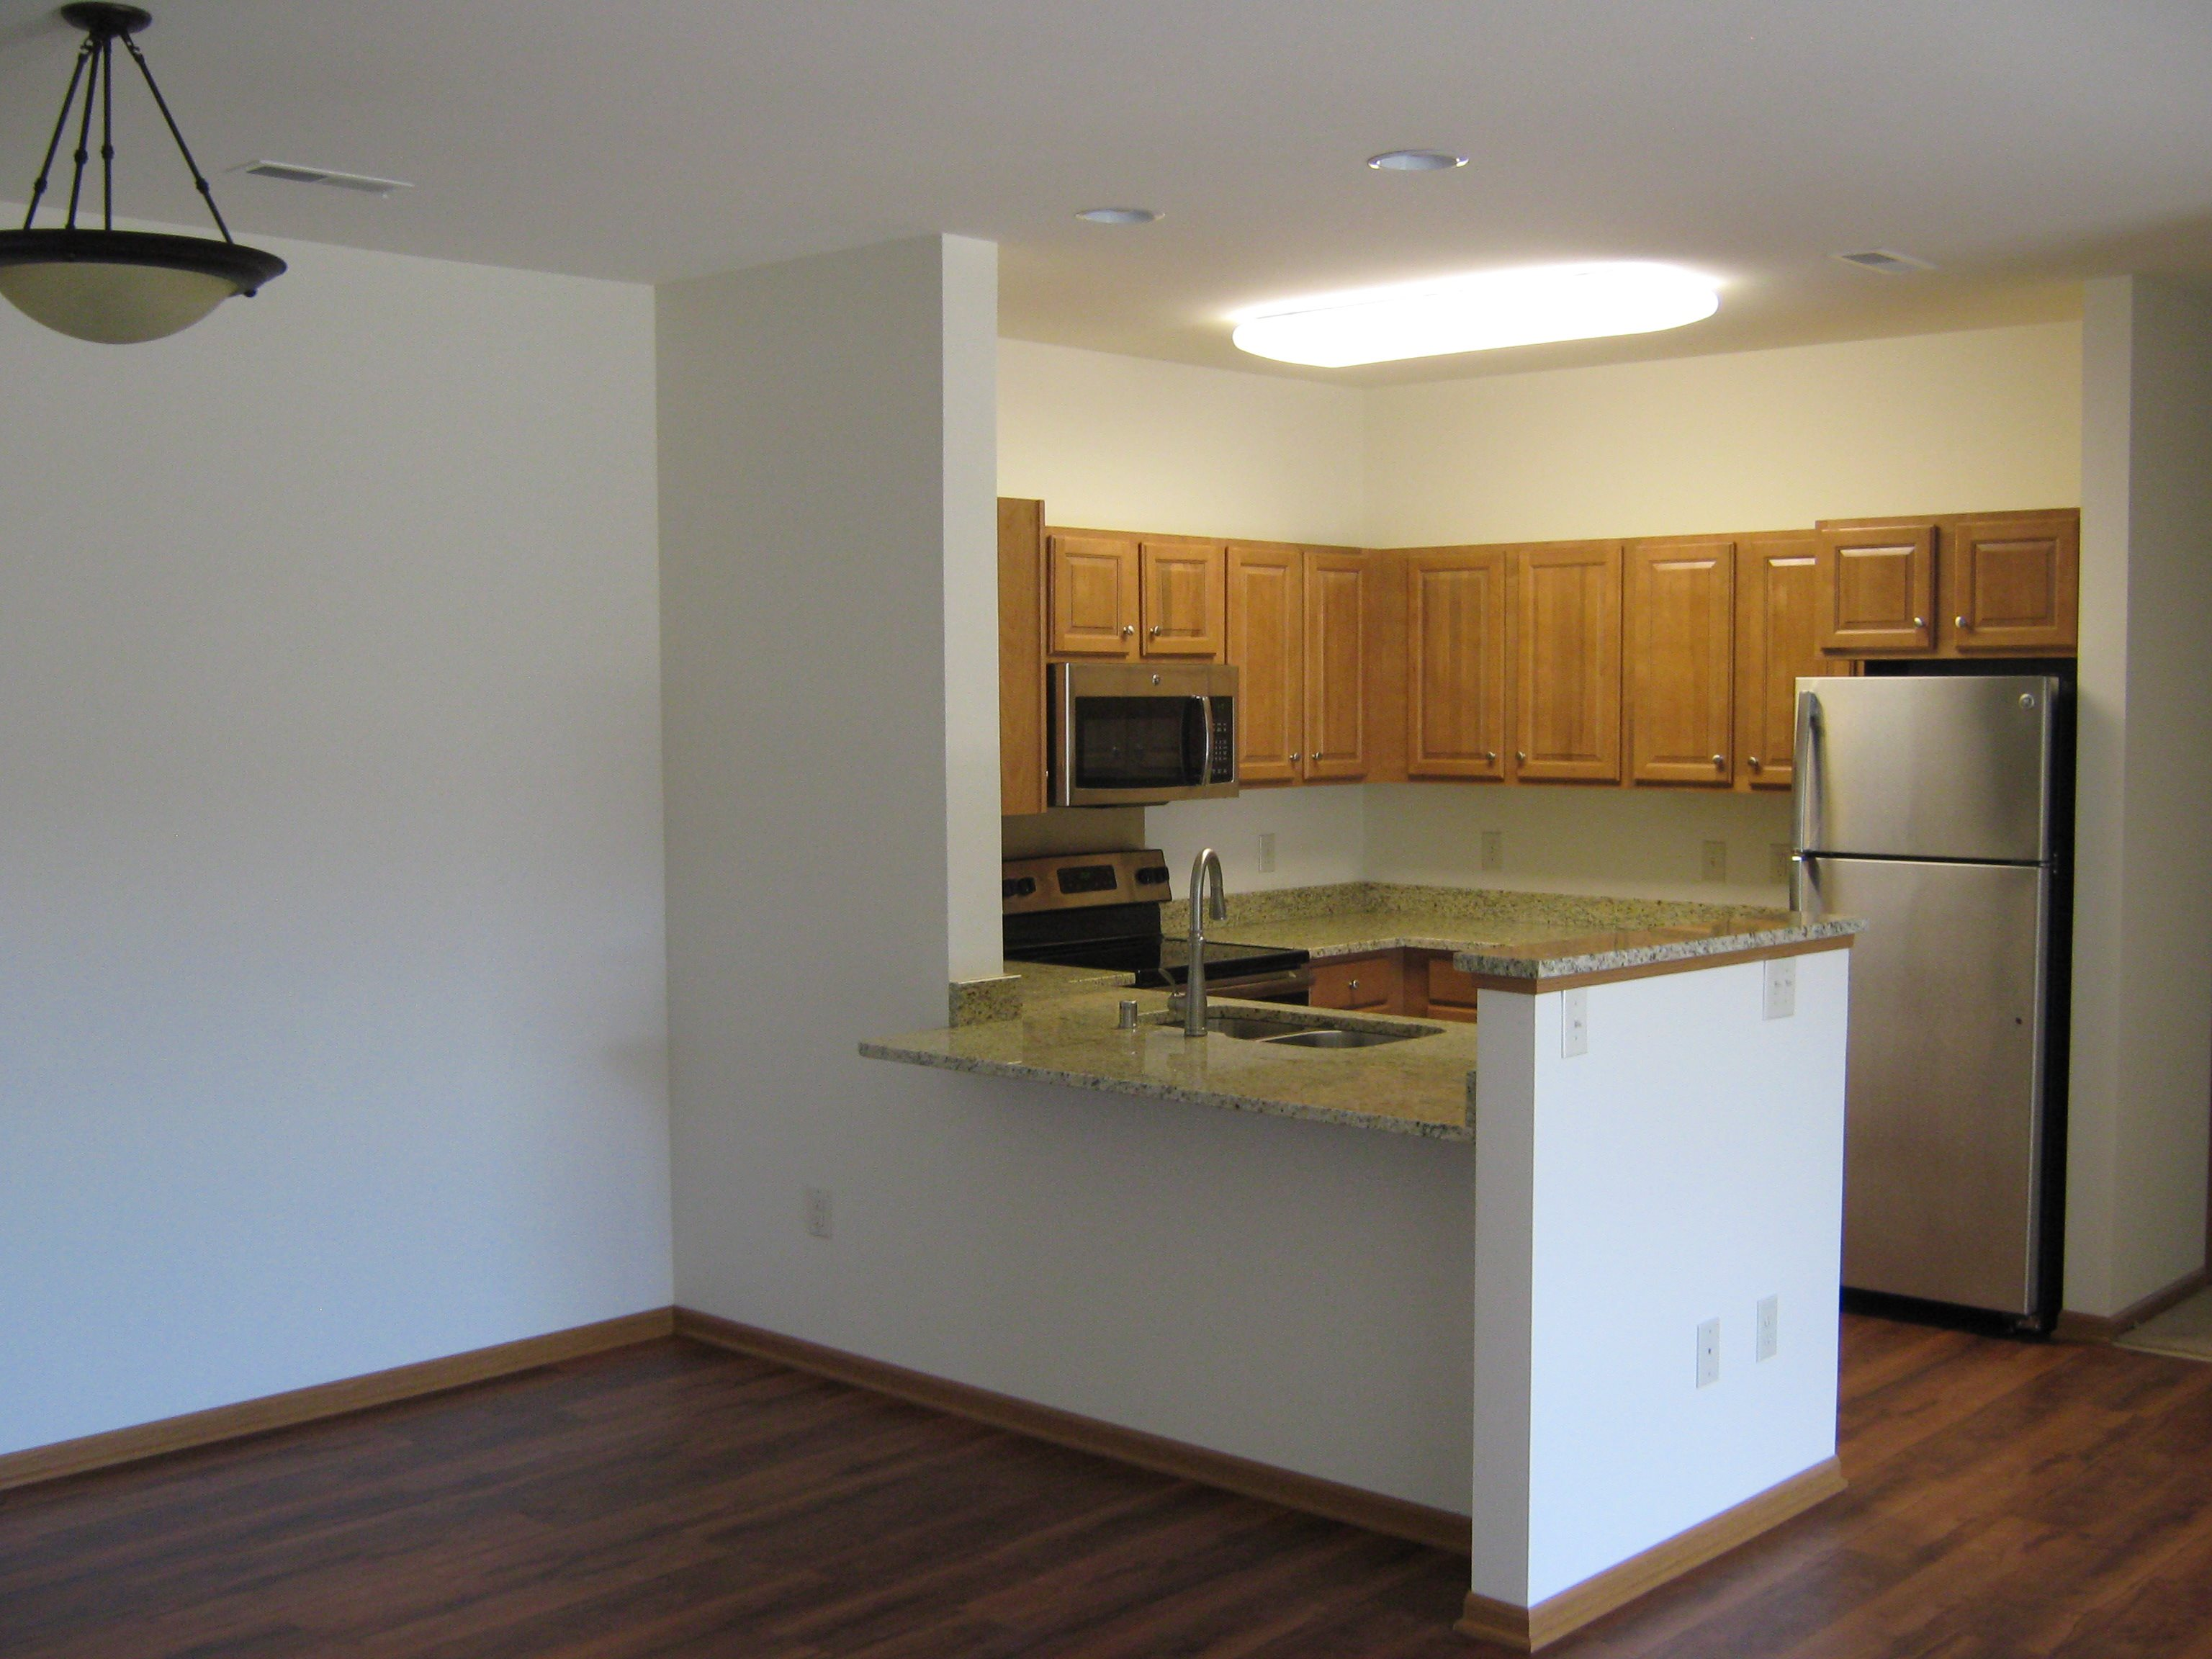 Gourmet Kitchens with Dishwasher and Disposal at Foresthill Highlands Apartments & Townhomes 55+, Franklin, WI,53132